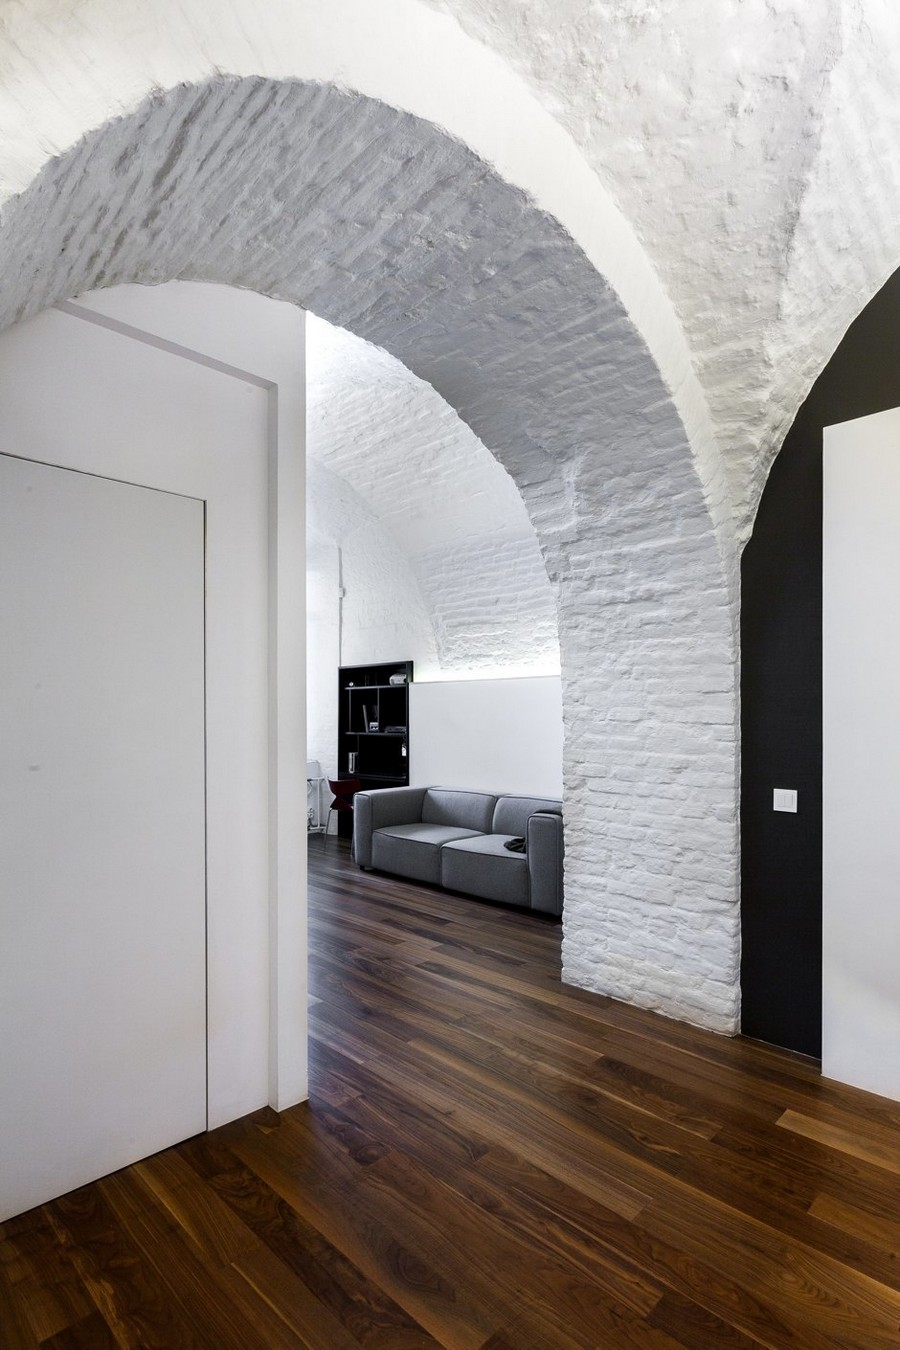 10-minimalist-style-ascetic-interior-painted-white-walls-brick-masonry-arched-ceiling-hallway-corridor